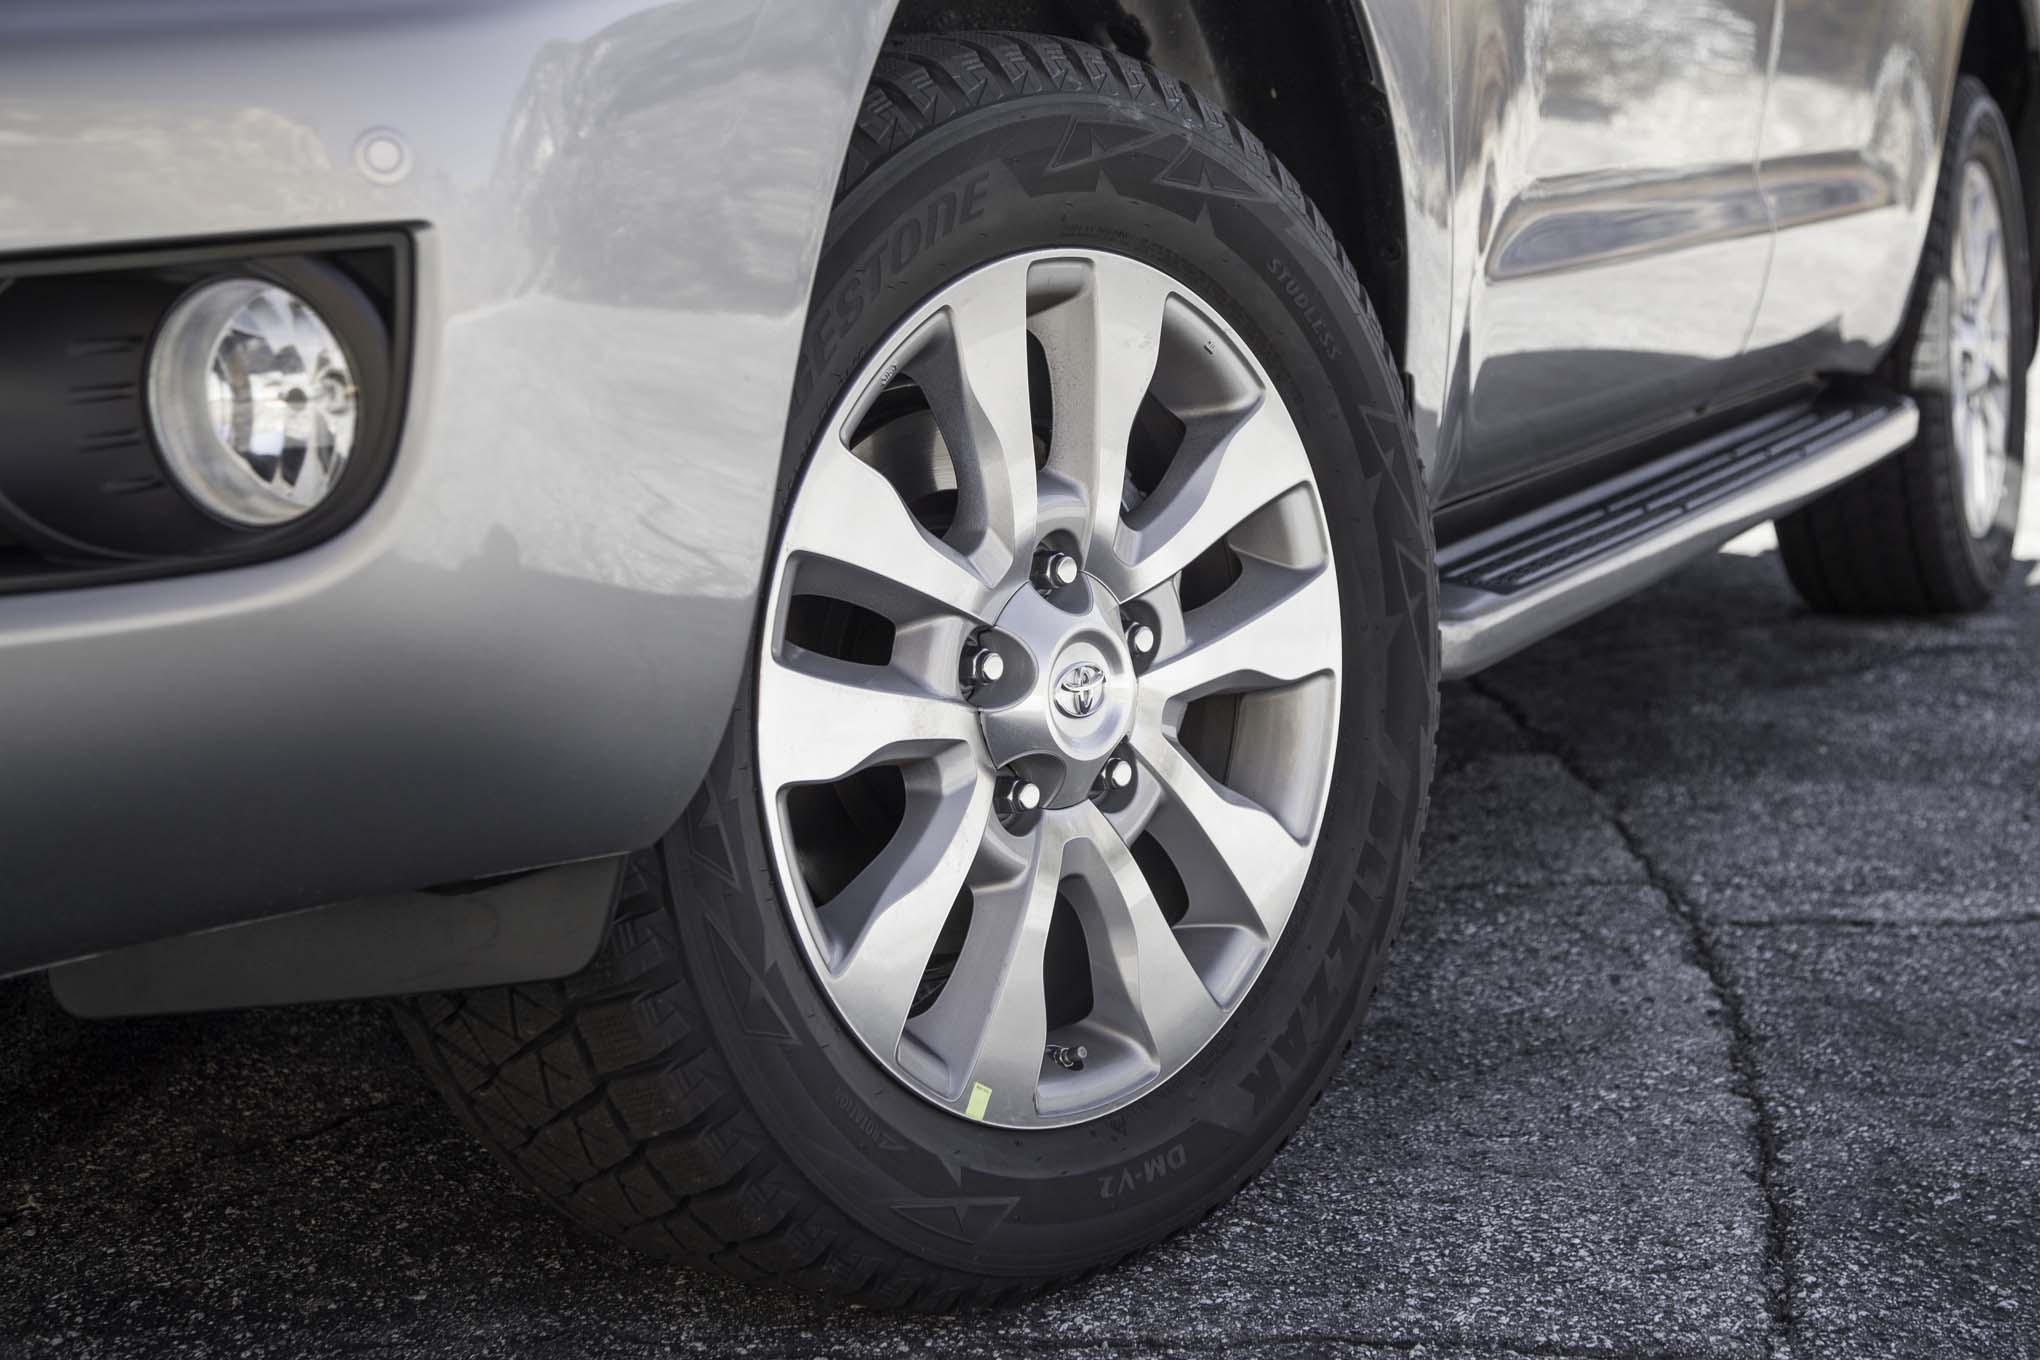 2017 Toyota Sequoia 4×4 Platinum Exterior View Wheel Profile (Photo 11 of 26)